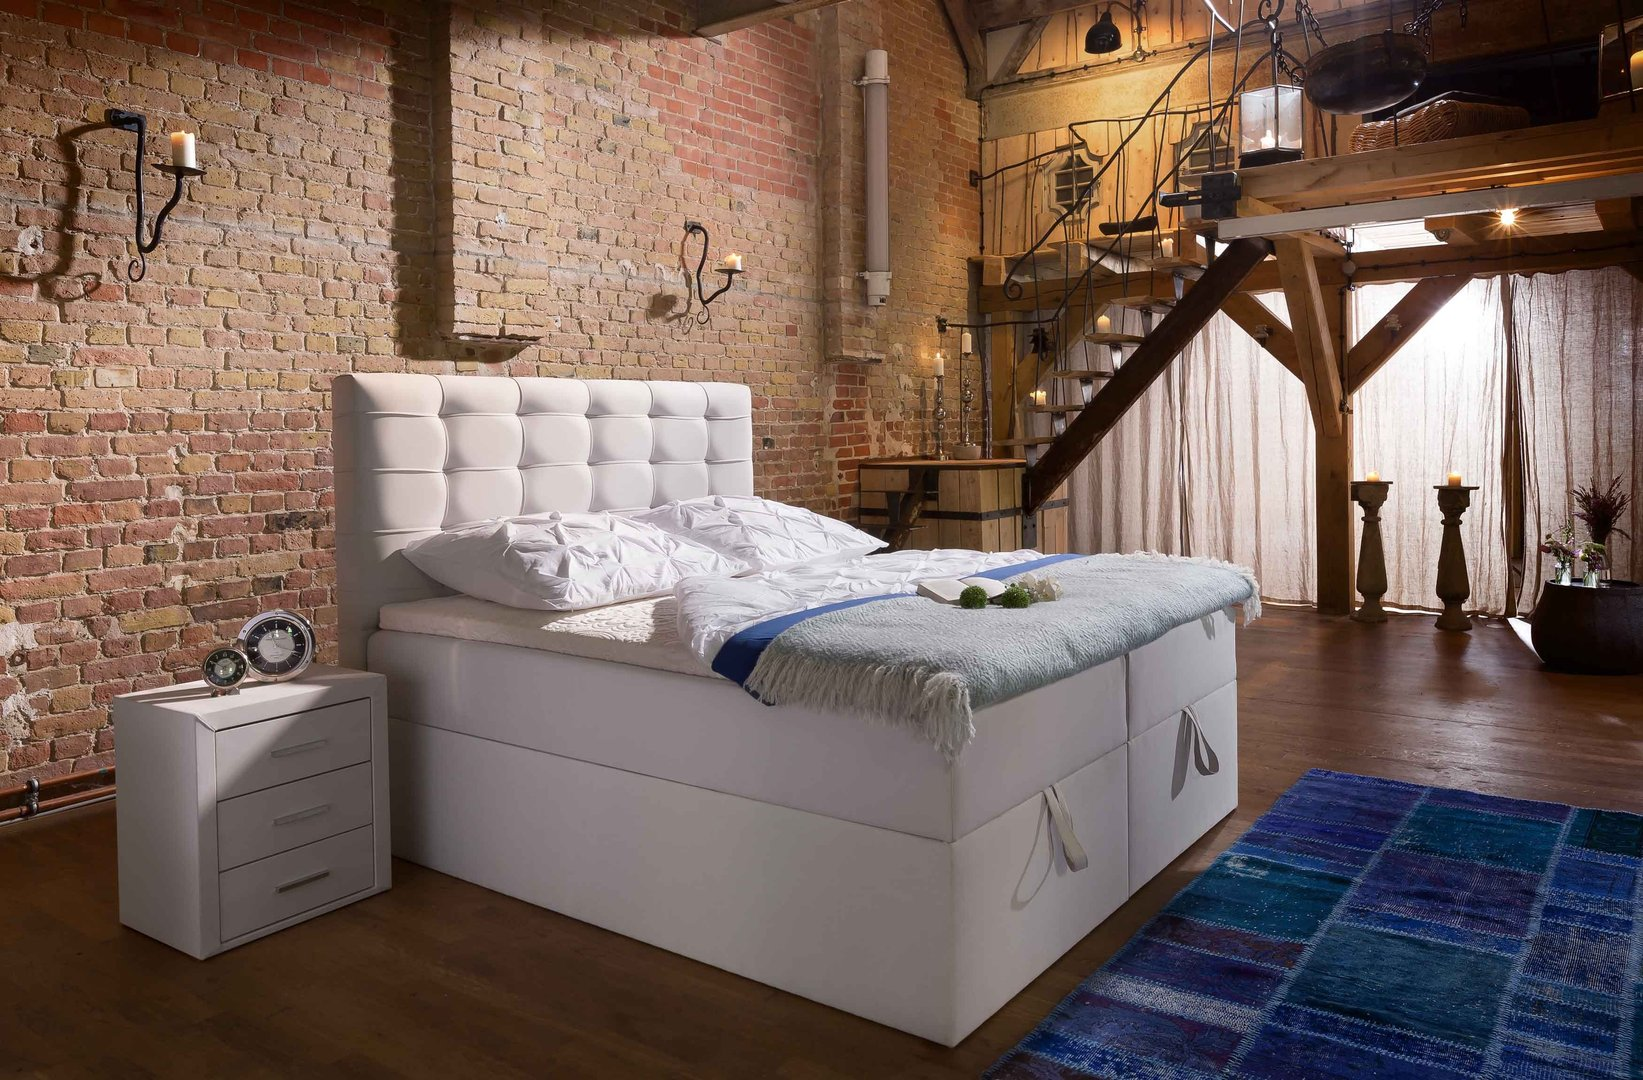 boxspringbett milano box plus mit bettkasten 90x200 140x200 160x200 200x200 ebay. Black Bedroom Furniture Sets. Home Design Ideas